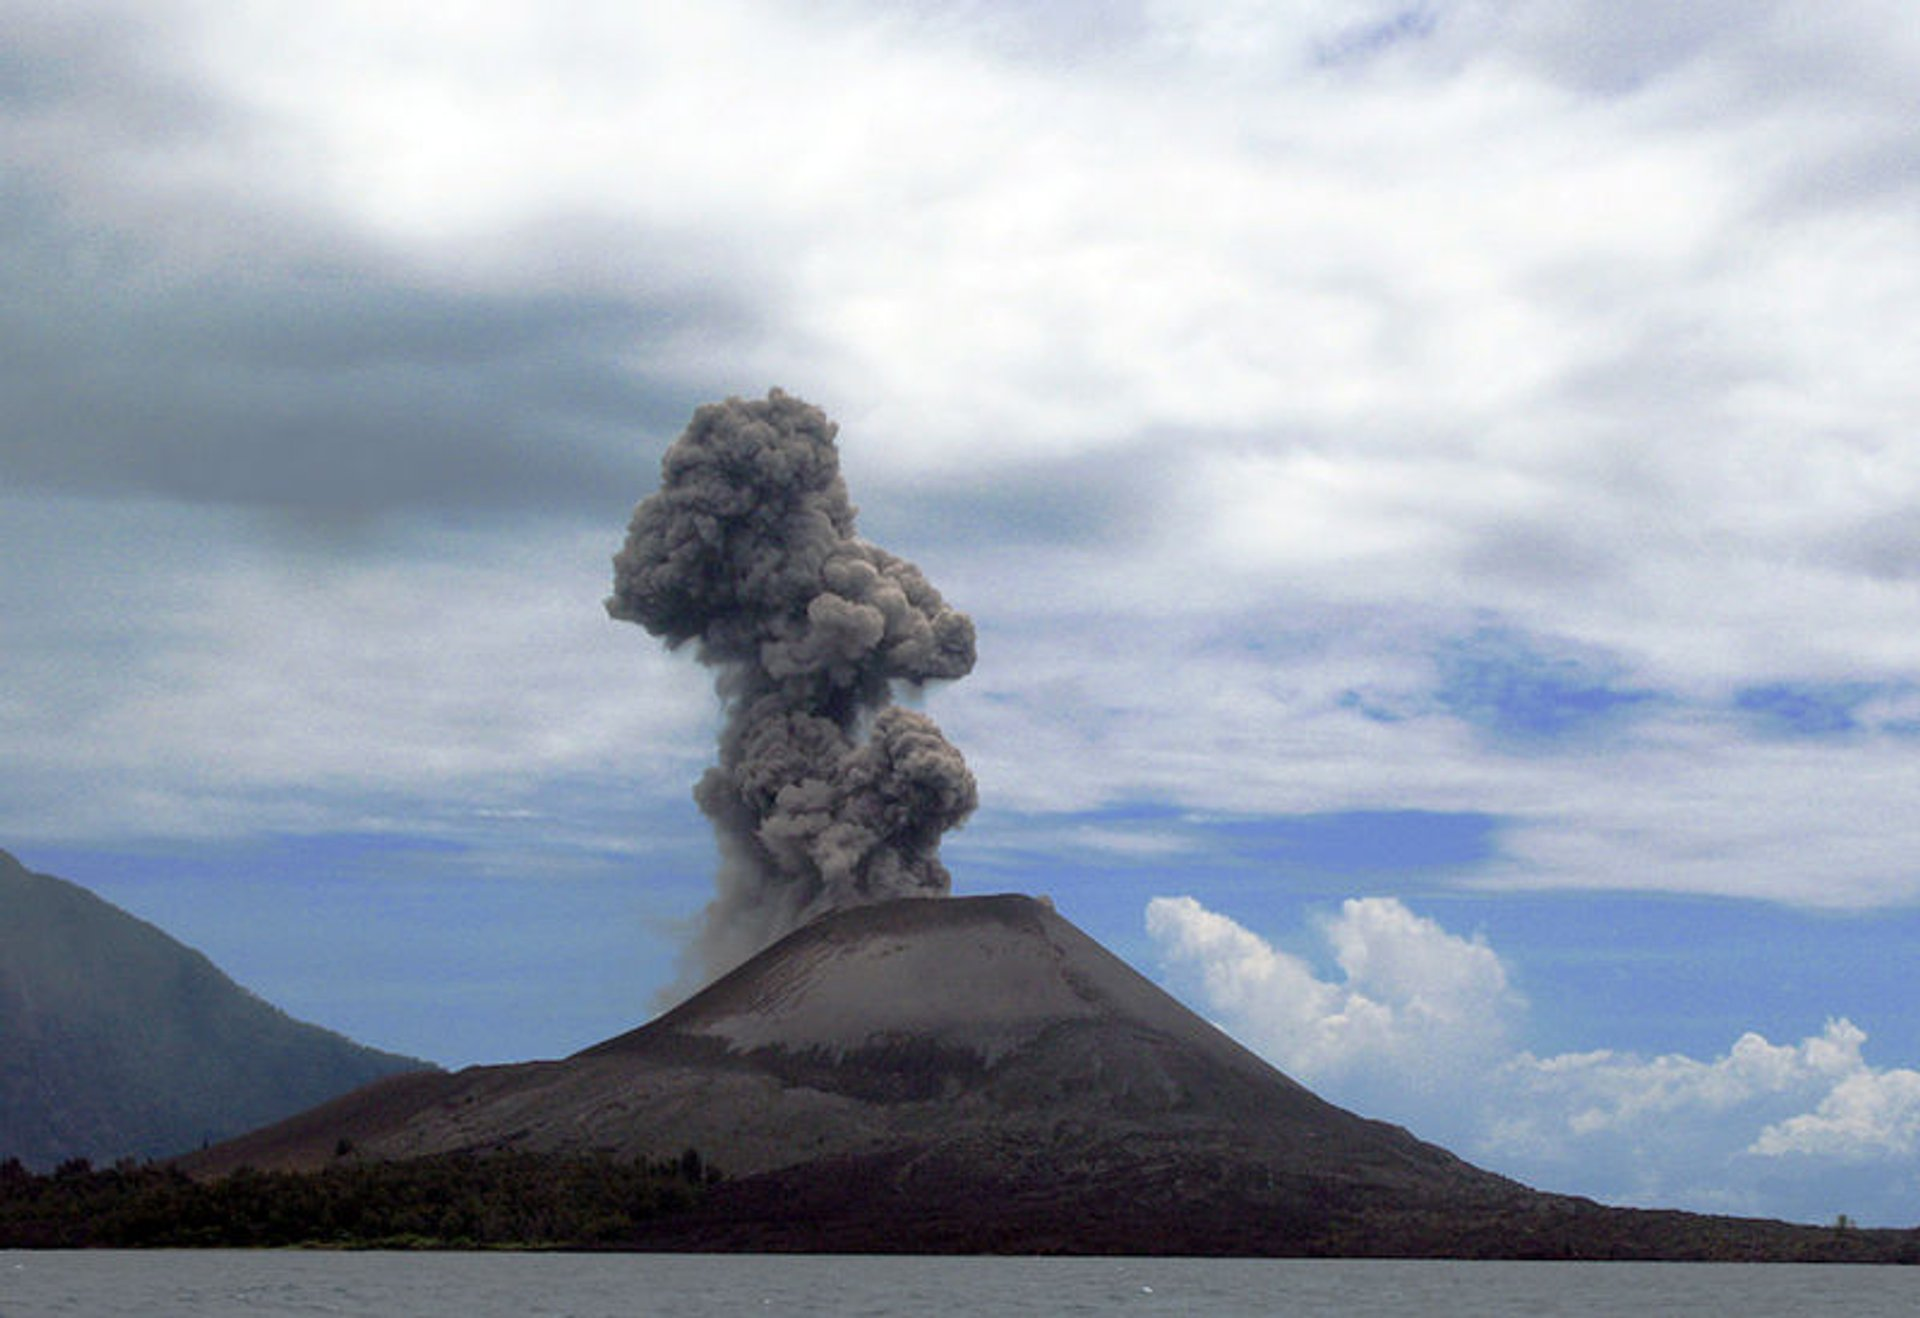 Krakatoa Island and Volcano in Indonesia 2020 - Best Time